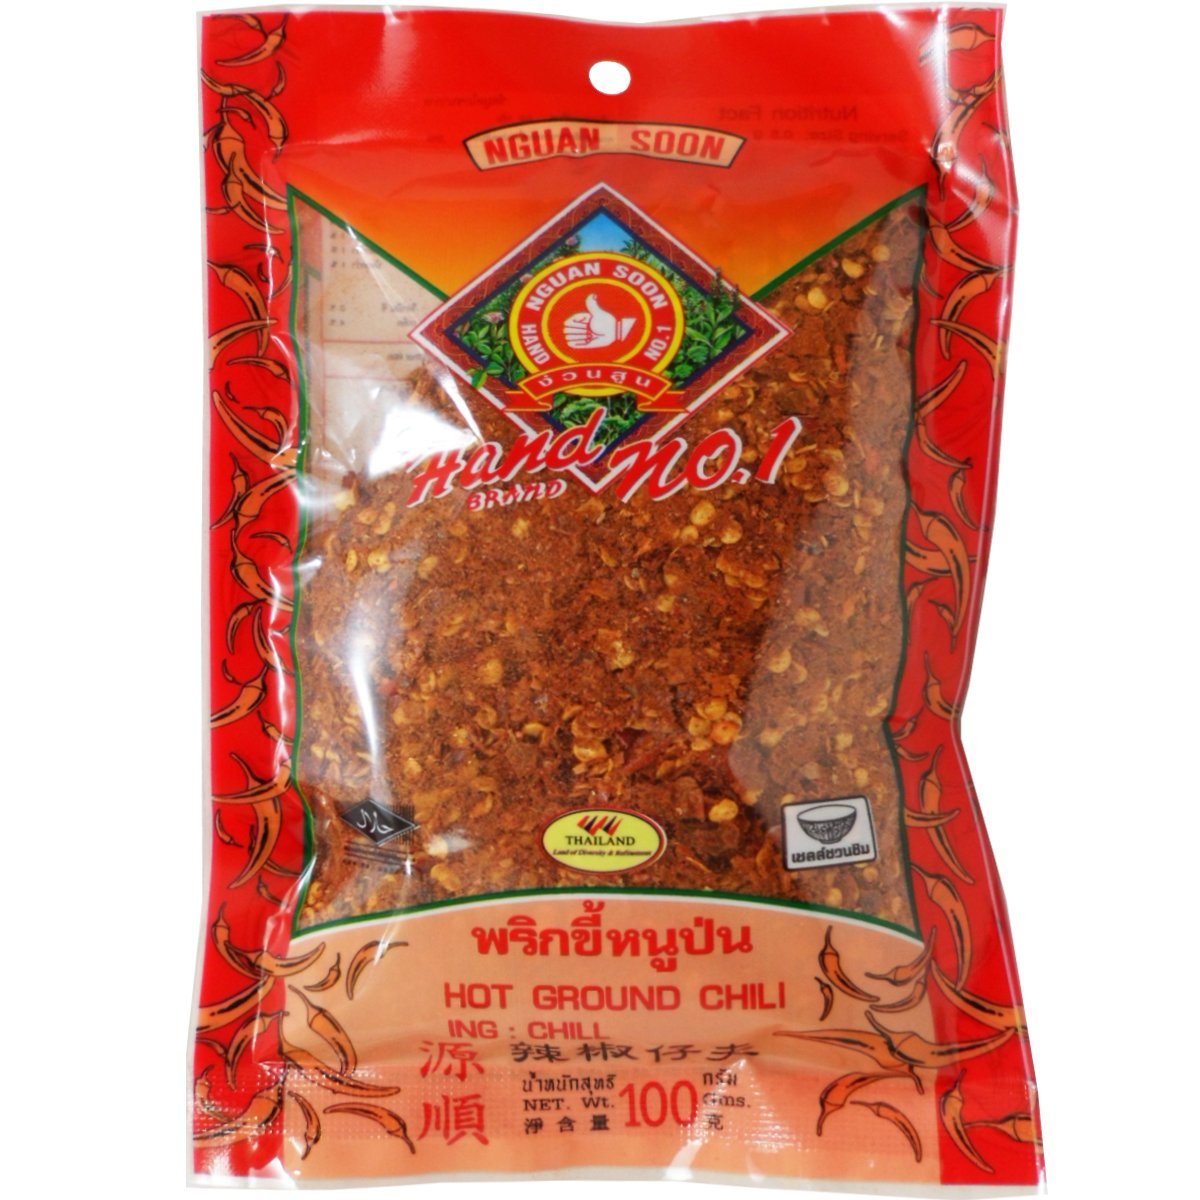 Hot Ground Dried Chili (Prik Pon) 100% From Natural Net Wt 100 G (3.53 Oz) Herbal Brand Nguan Soon X 4 Bags